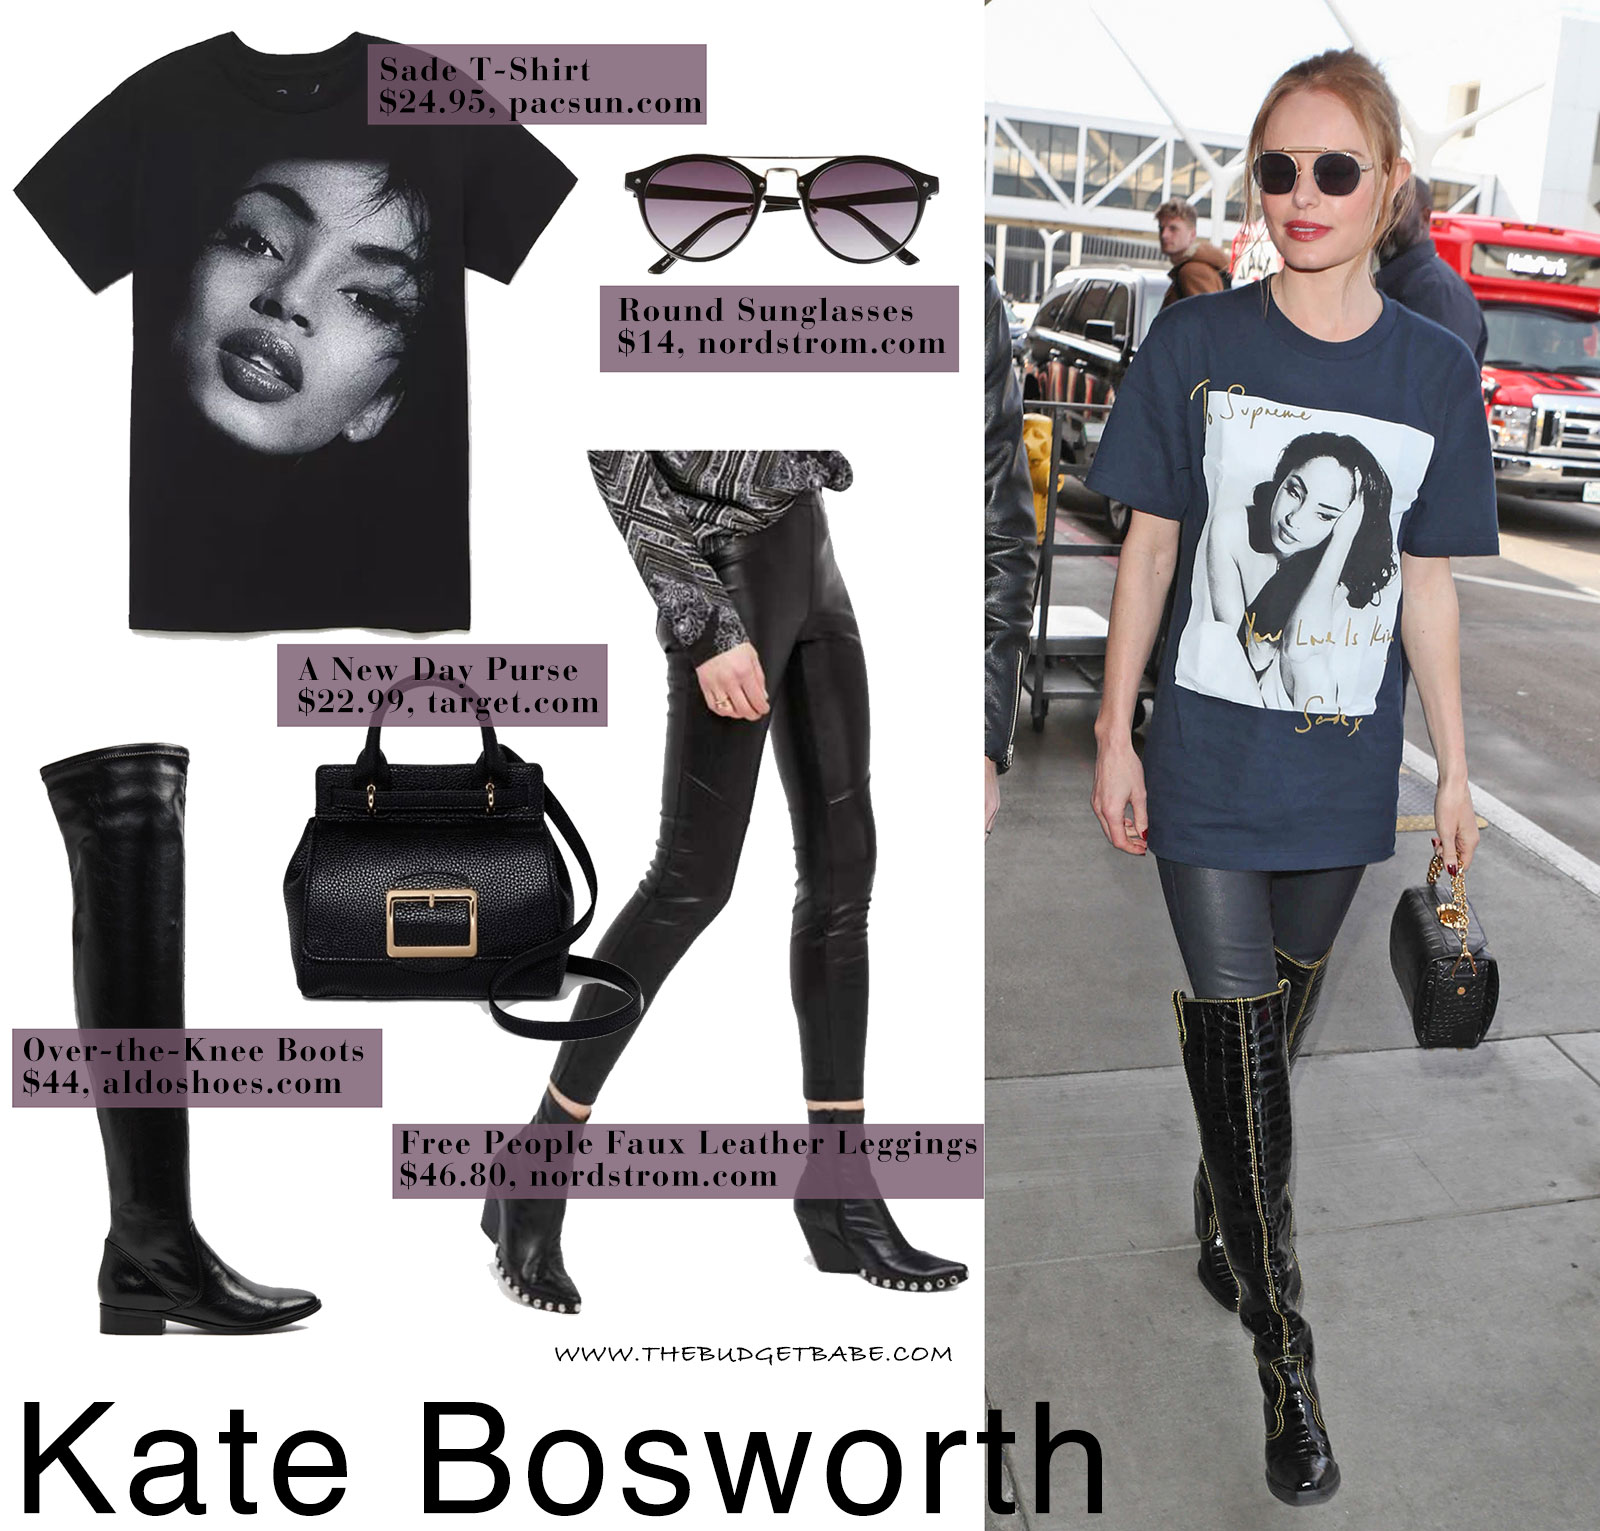 6b4ebedbb58 Kate Bosworth wears a Sade t-shirt by Supreme while making her way through  LAX